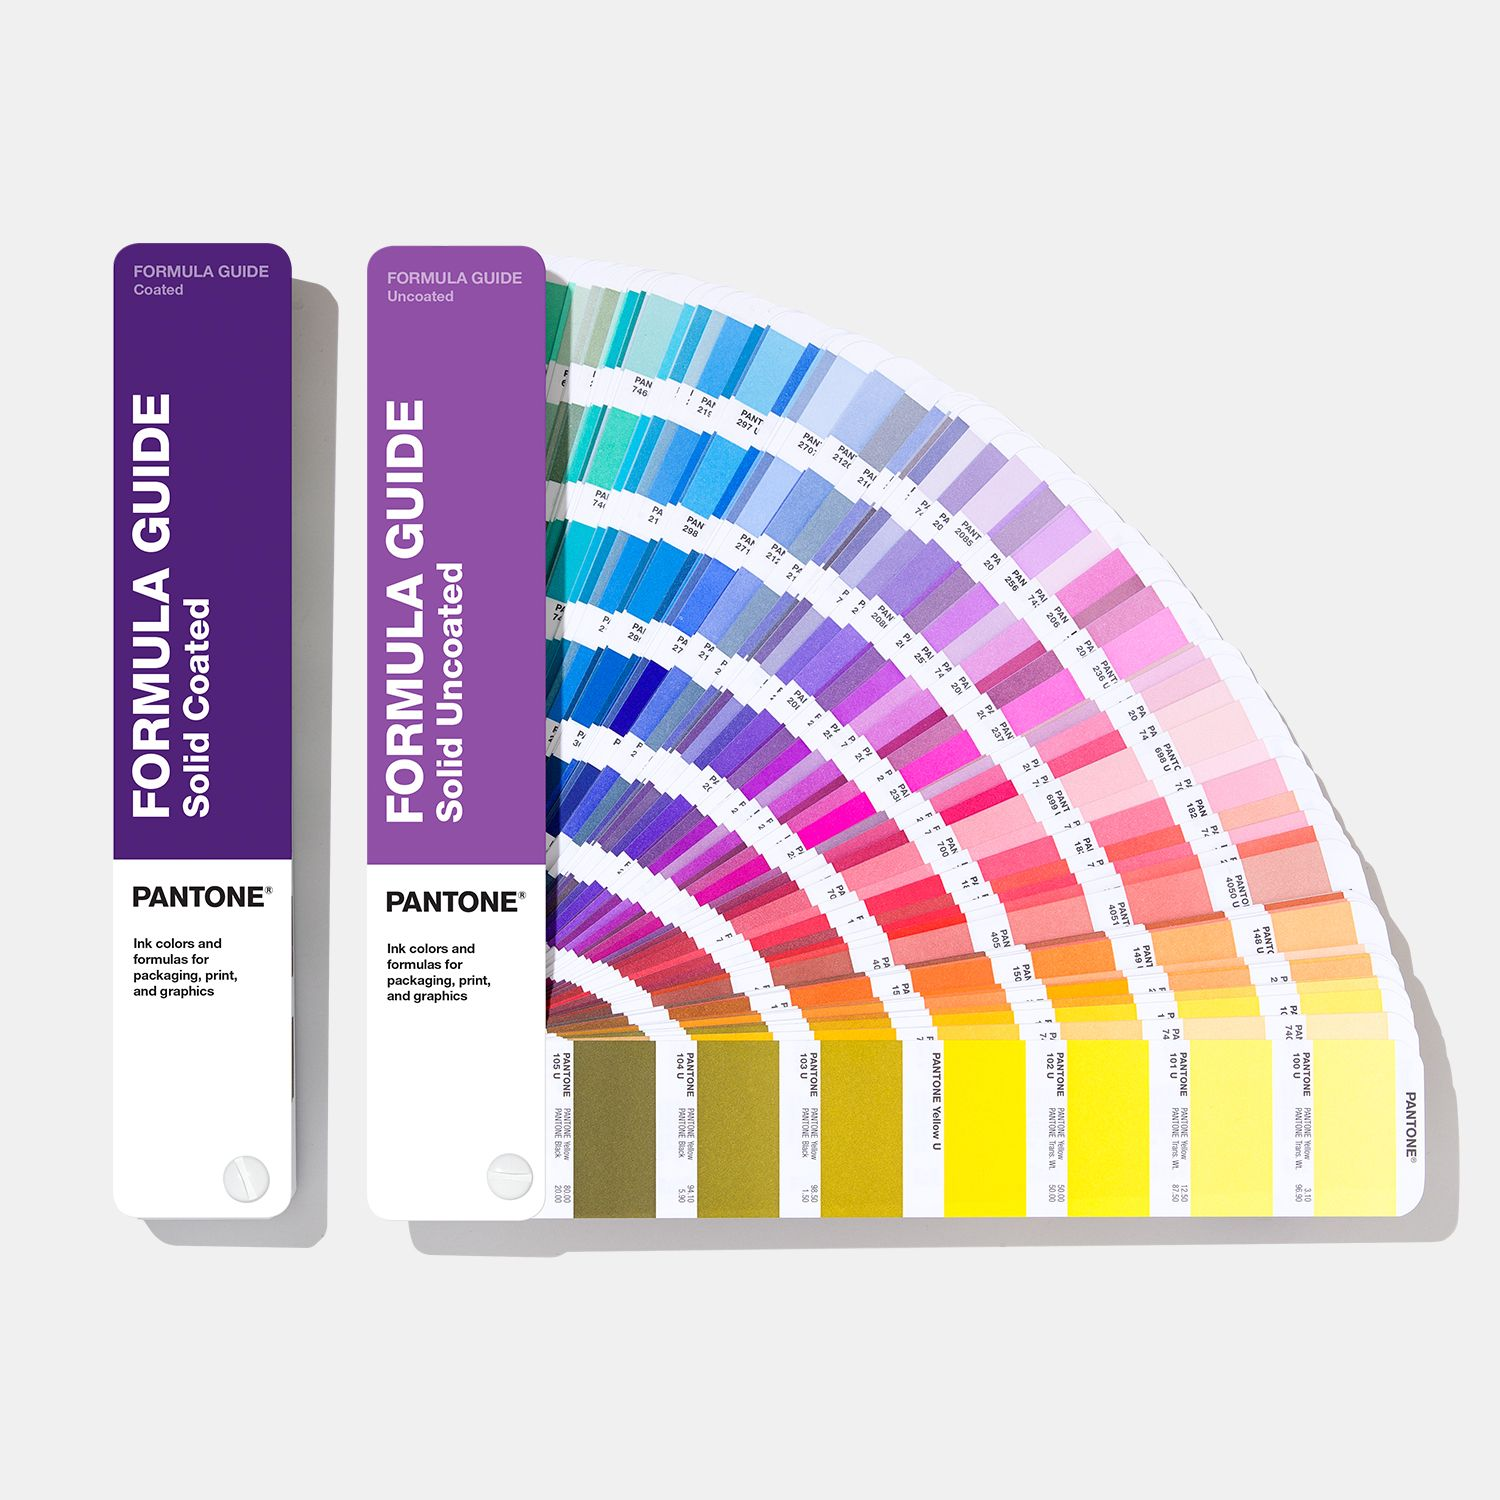 formula guide coated uncoated pantone color book 286 5265 c